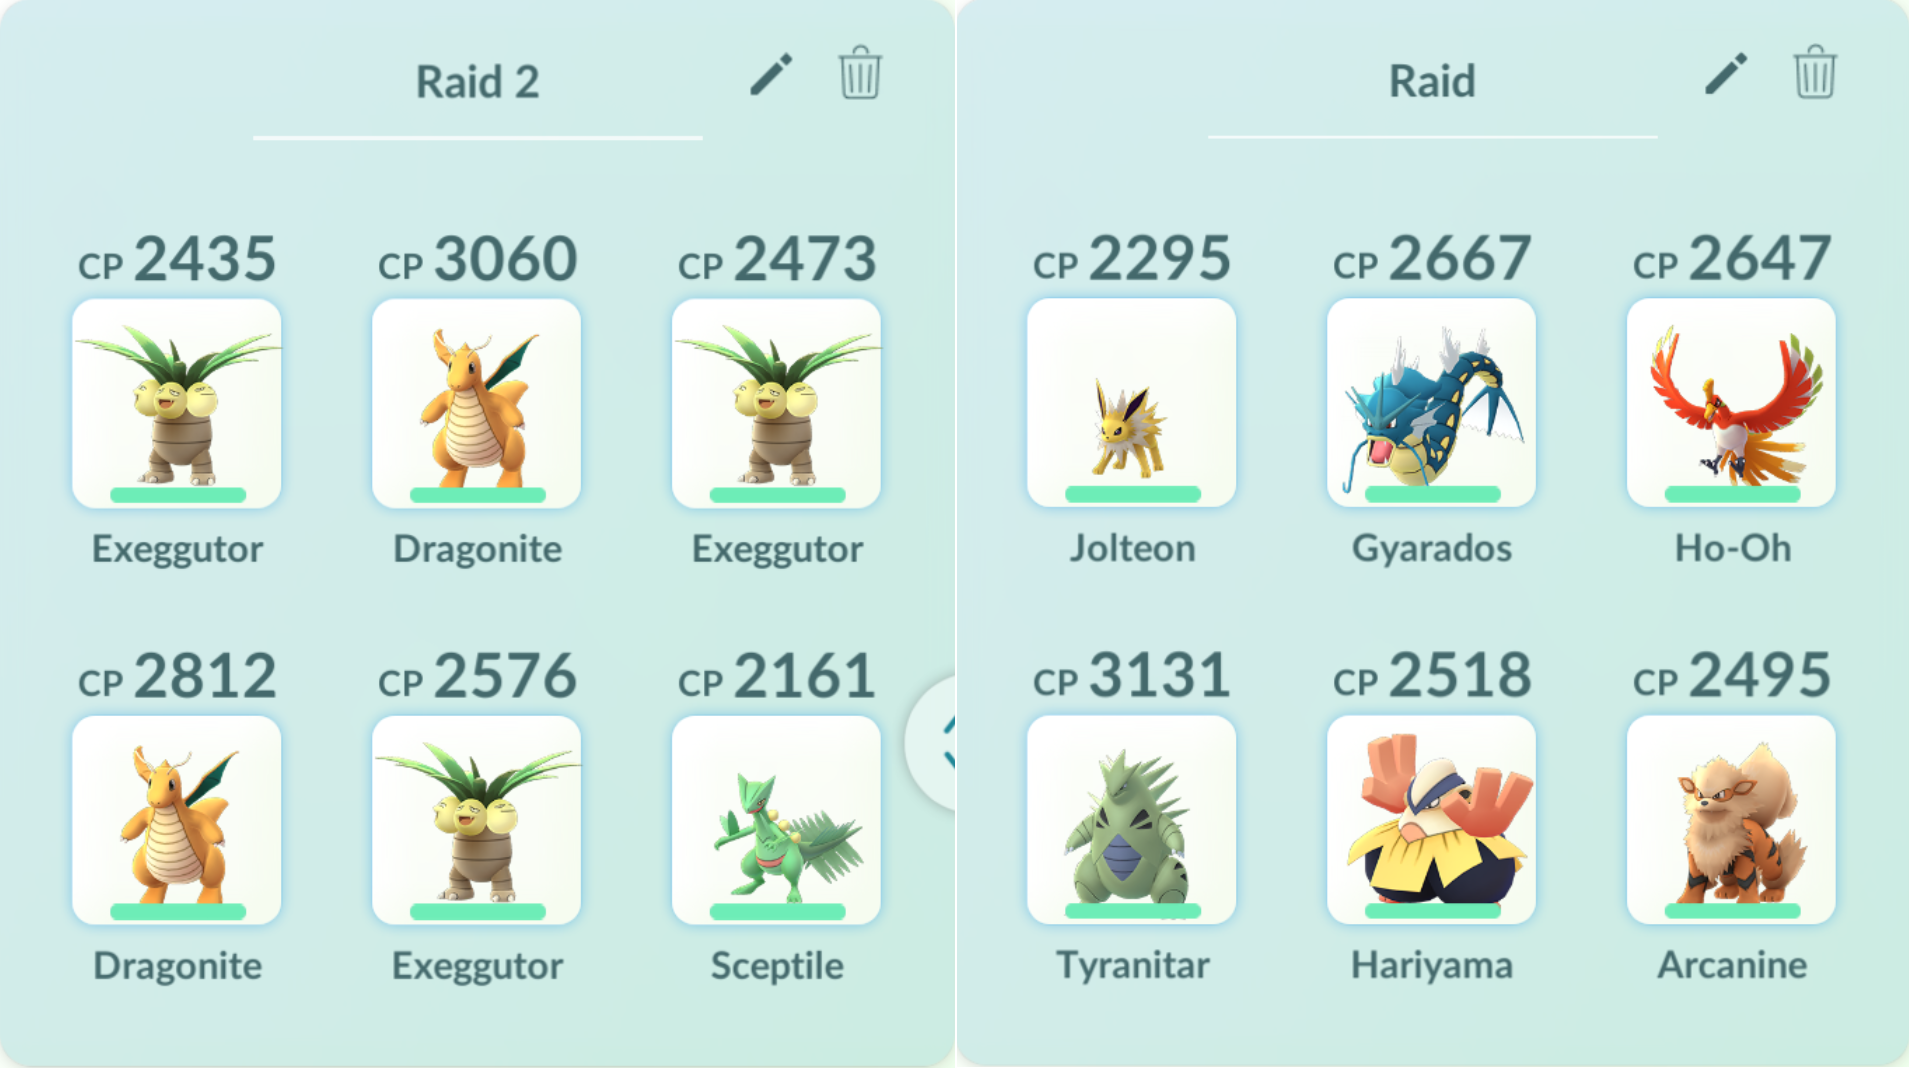 Kyogre Raid Parties? | Pokemon GO Wiki - GamePress